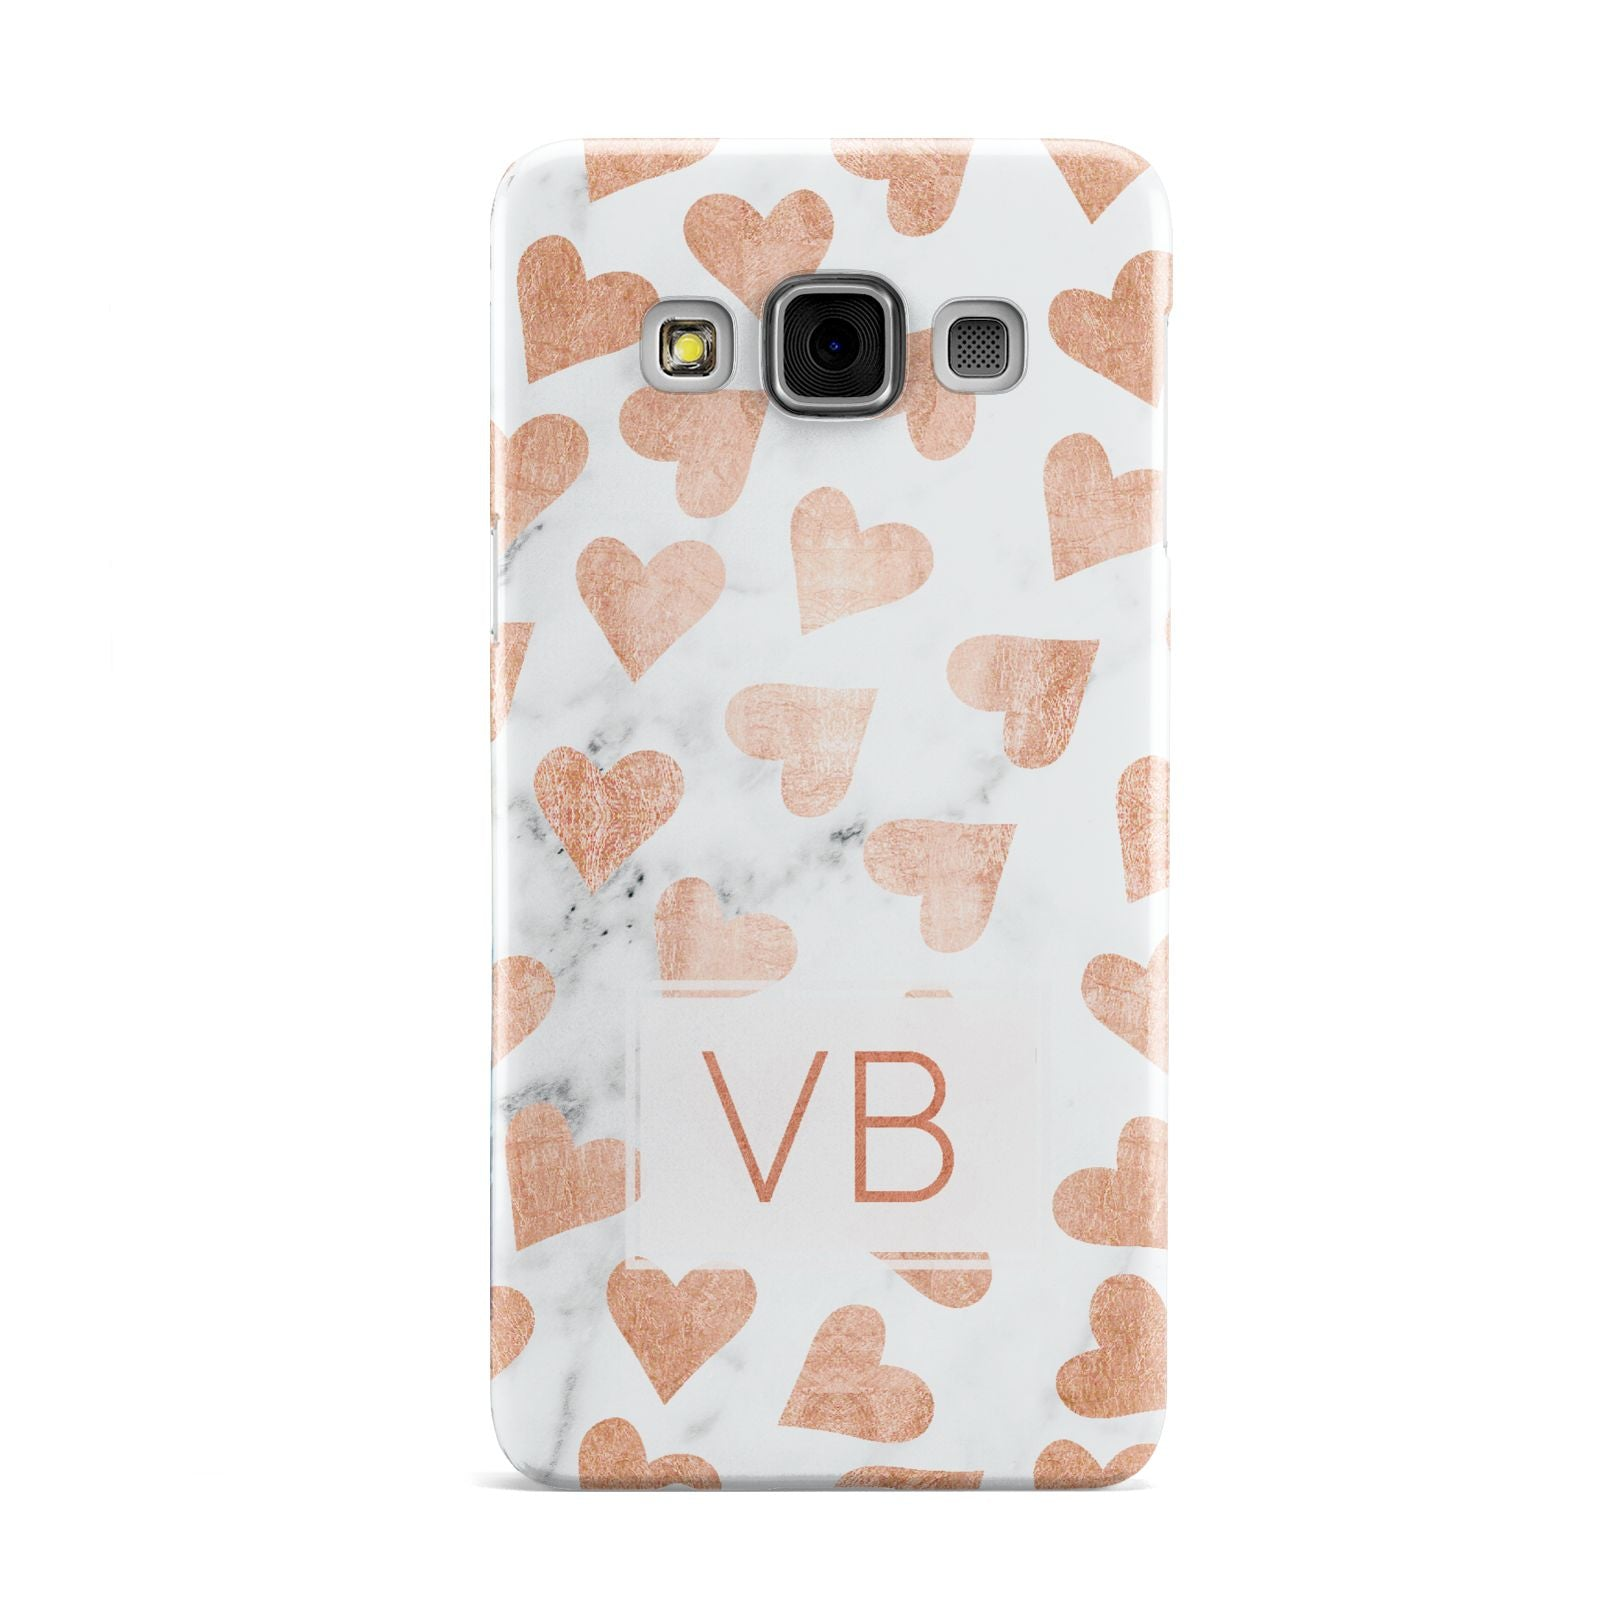 Personalised Heart Initialled Marble Samsung Galaxy A3 Case